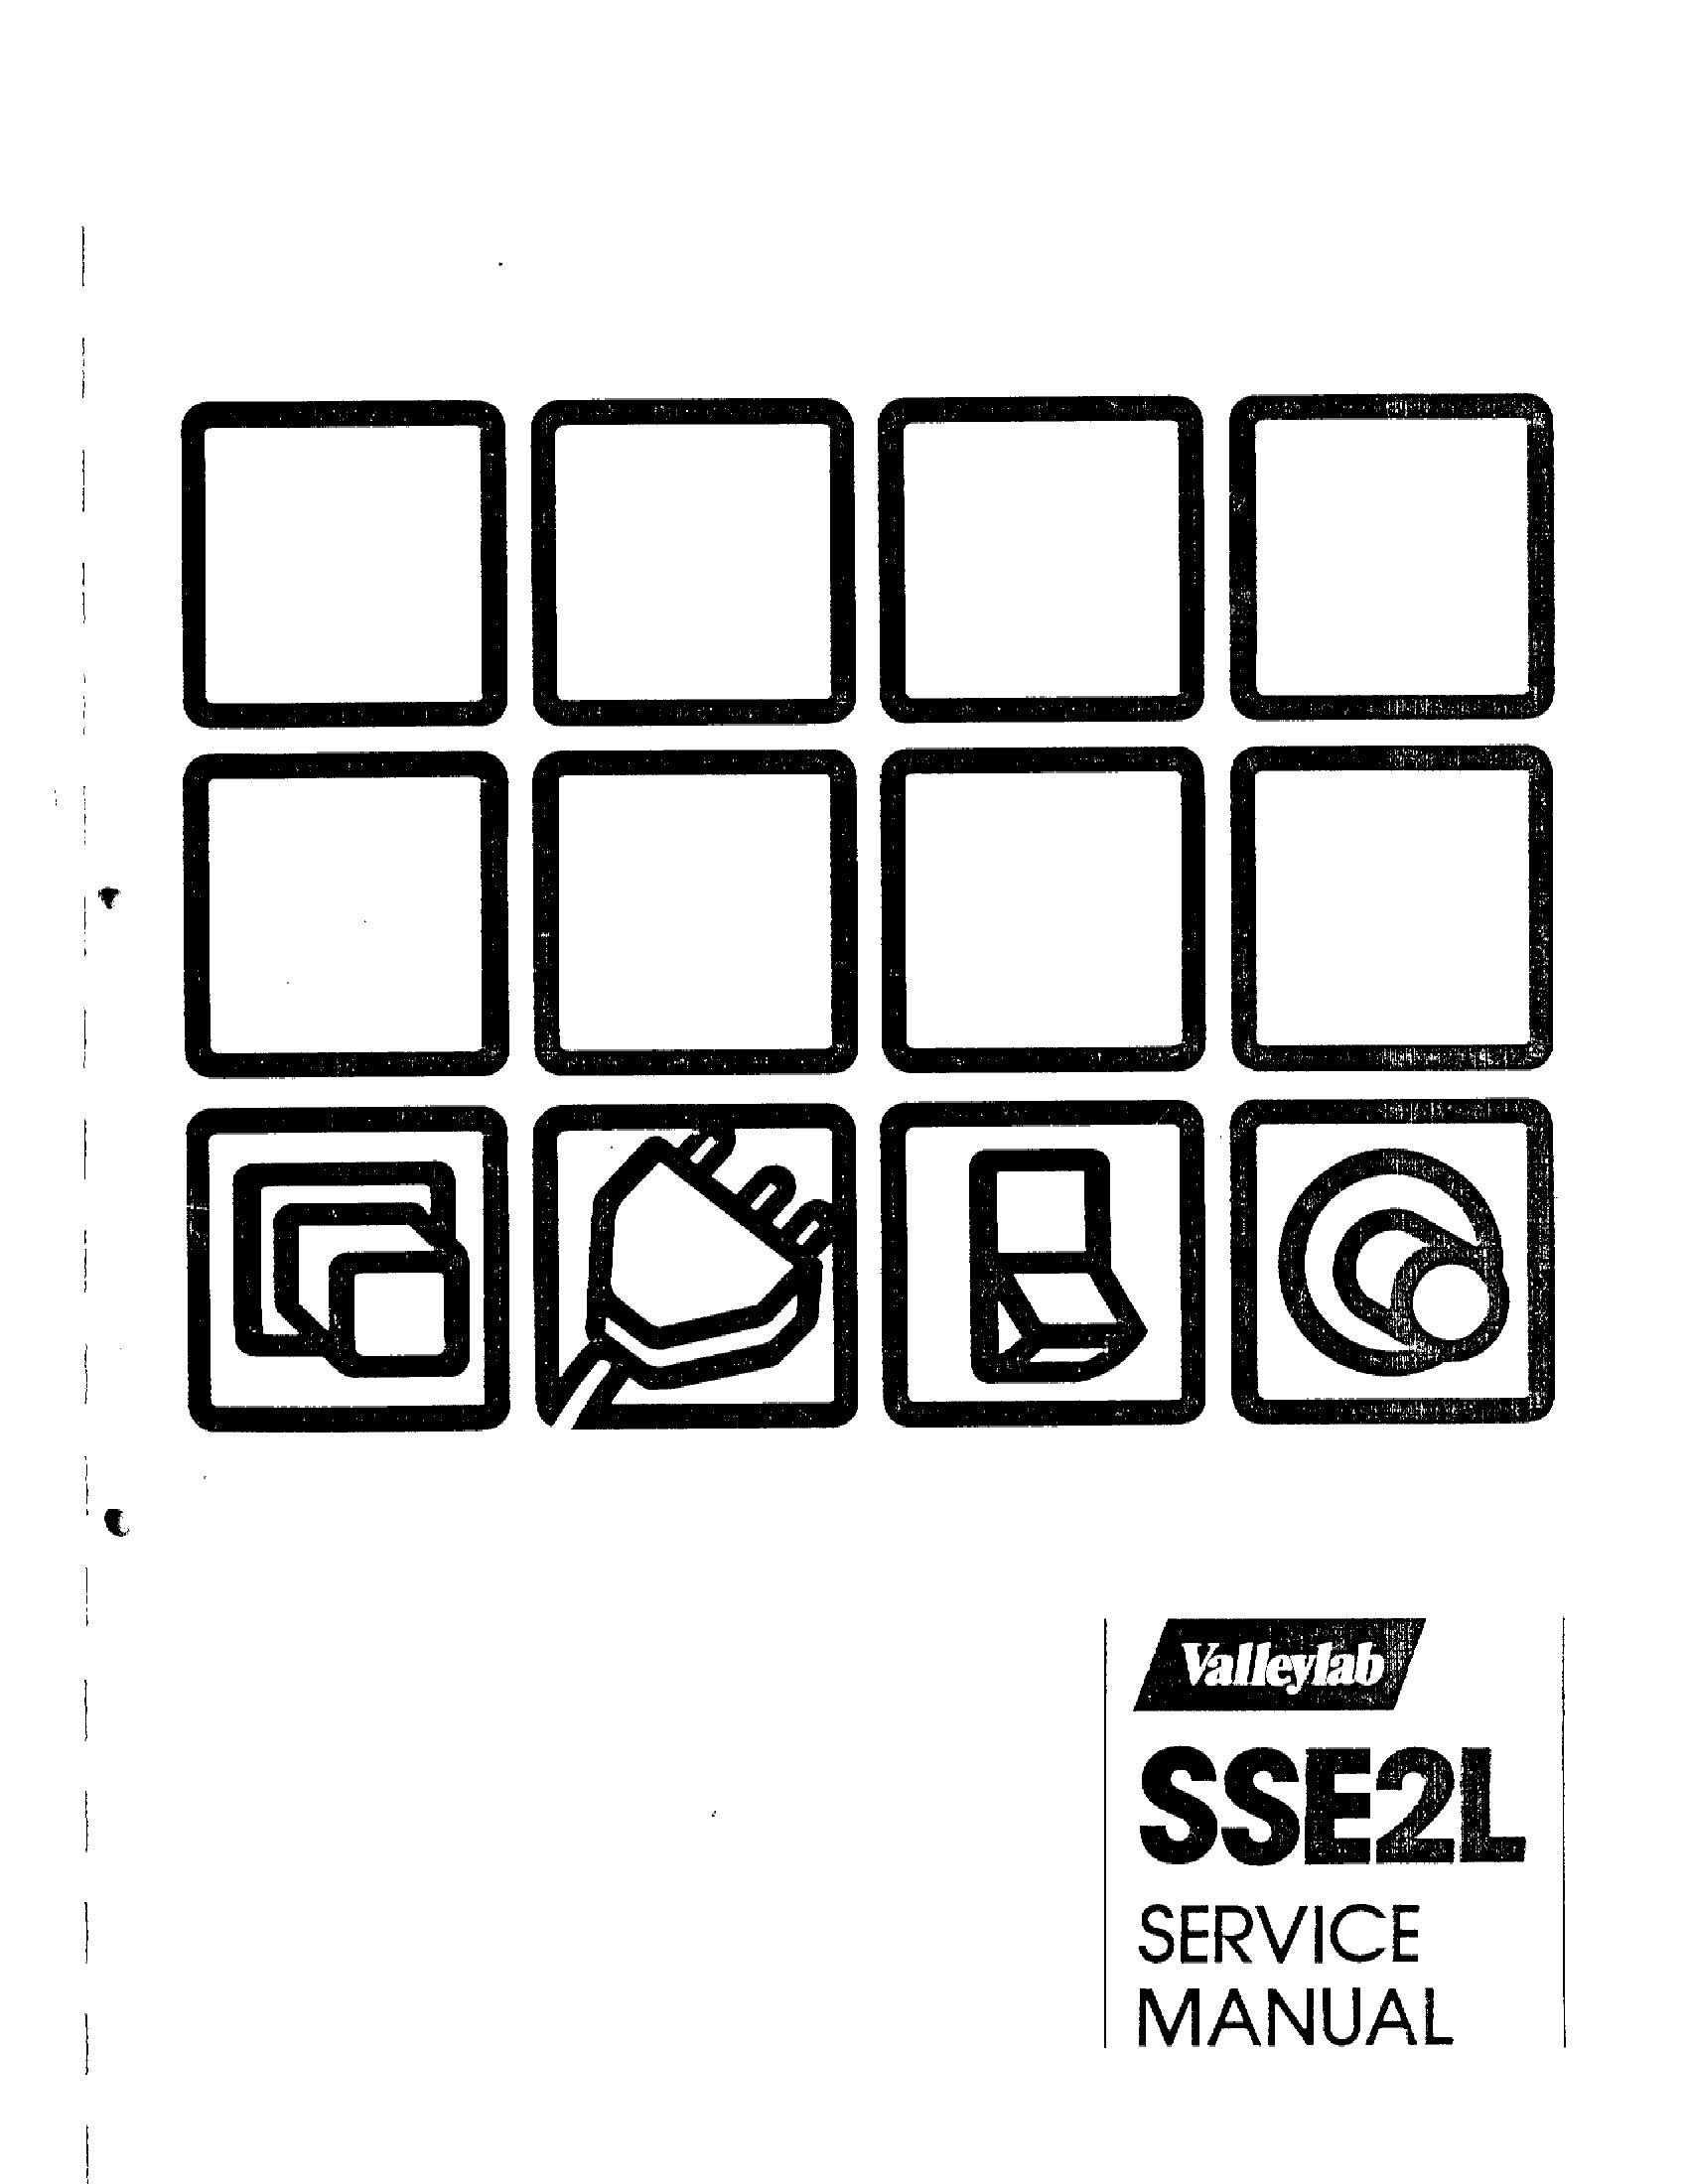 Valleylab SSE 2 L Service manual (1982)